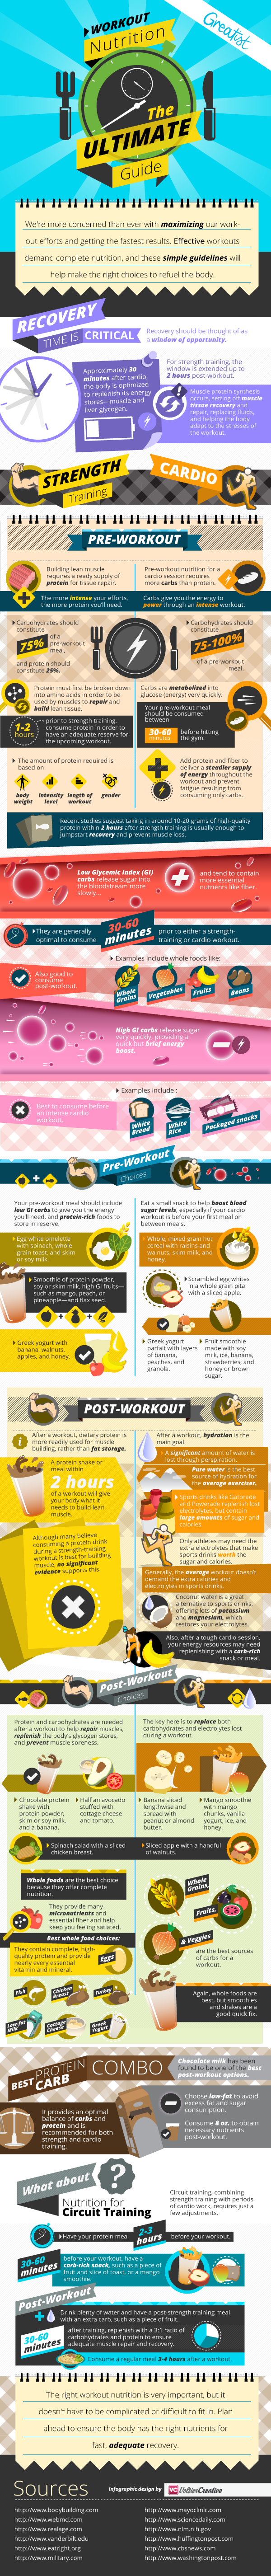 Ultimate Guide To Workout Nutrition